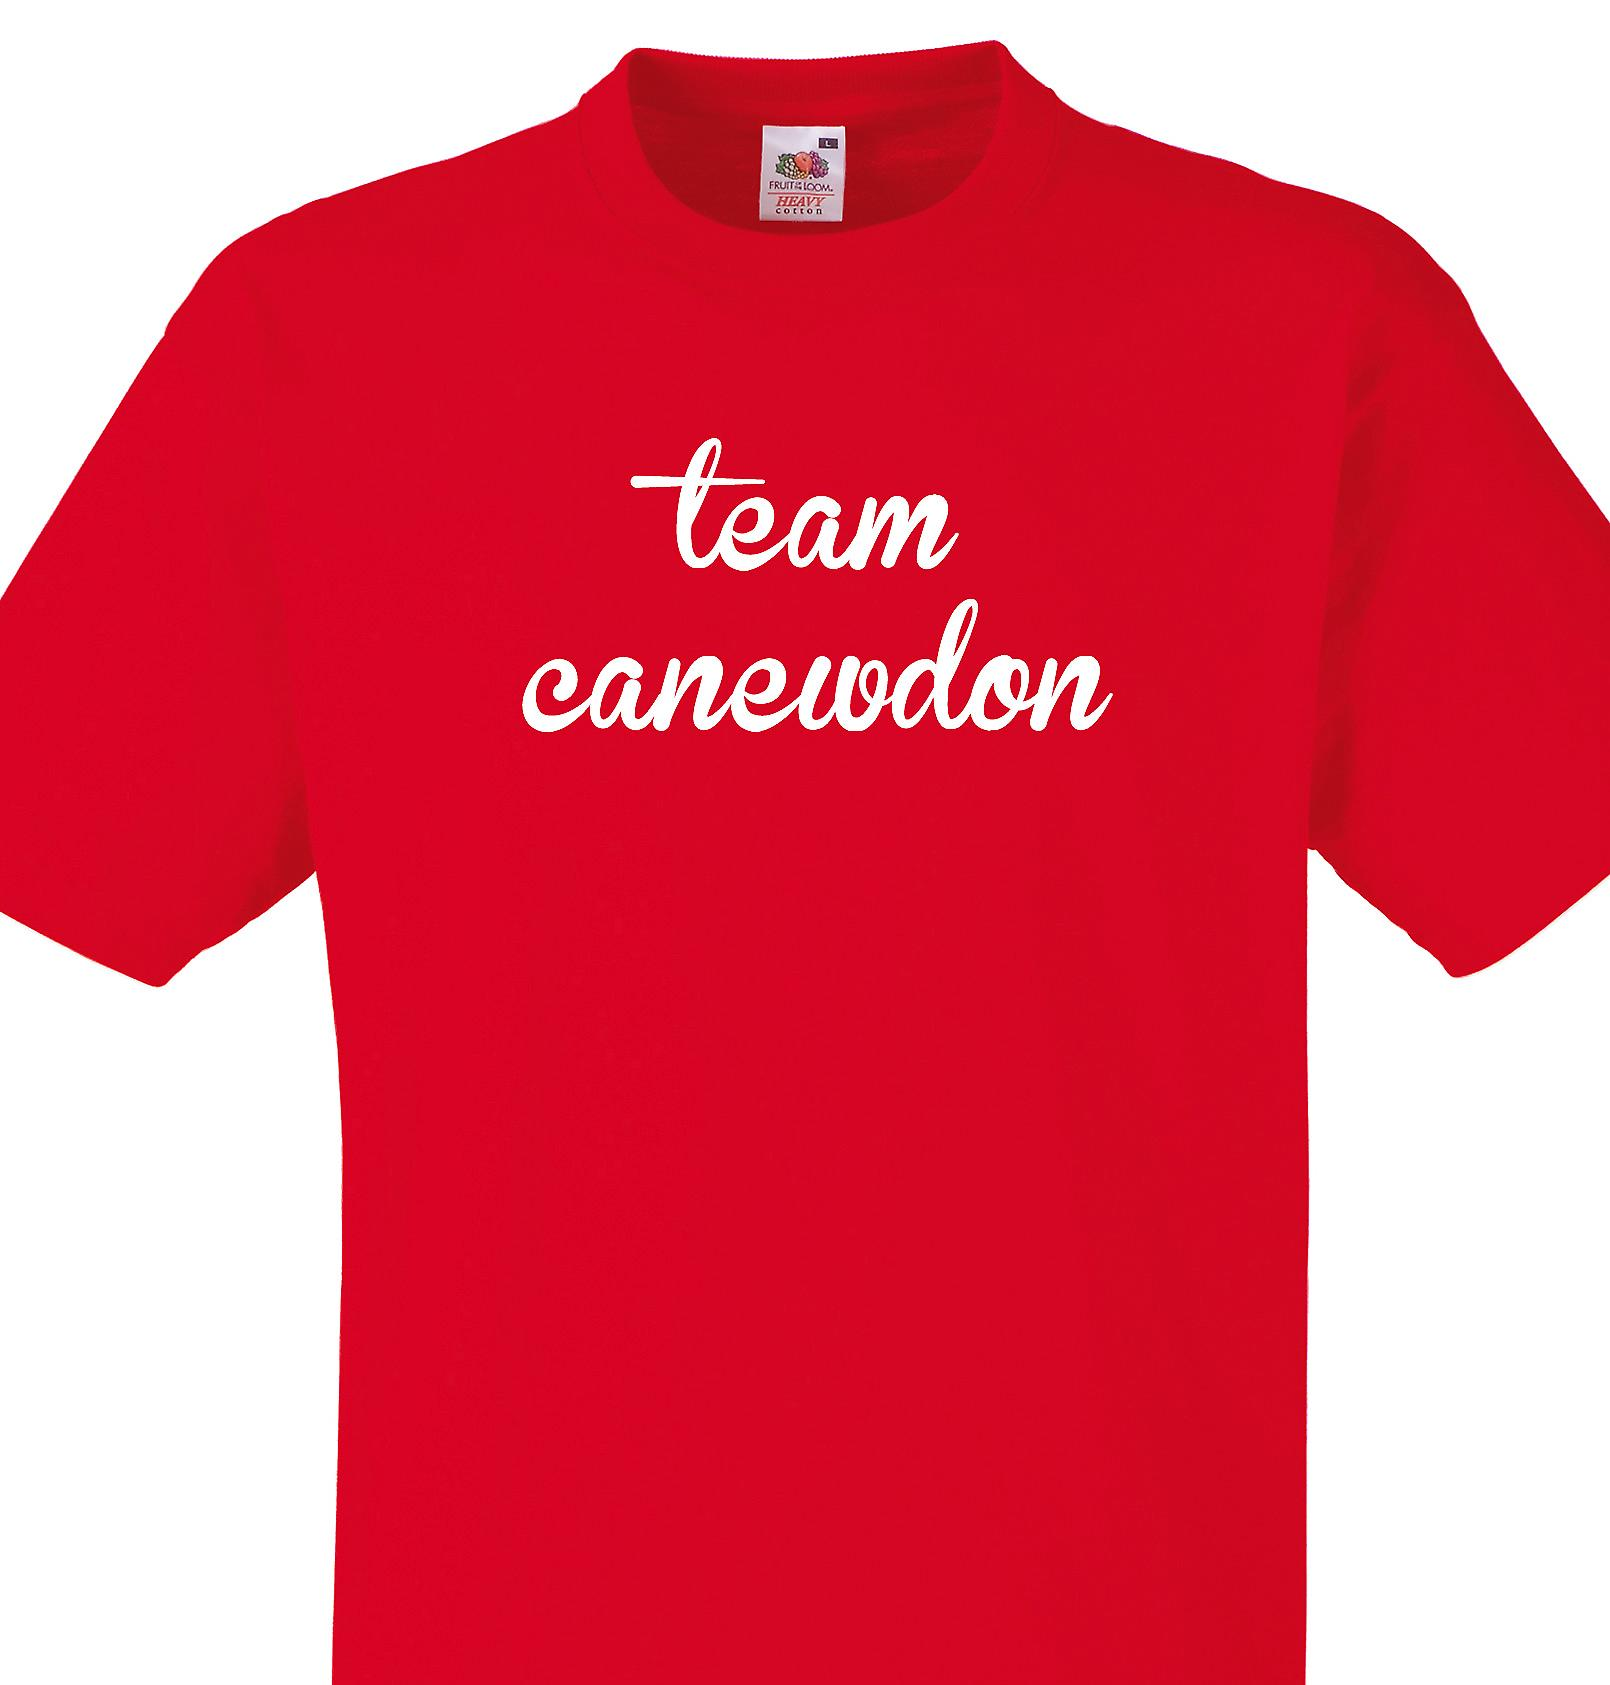 Team Canewdon Red T shirt